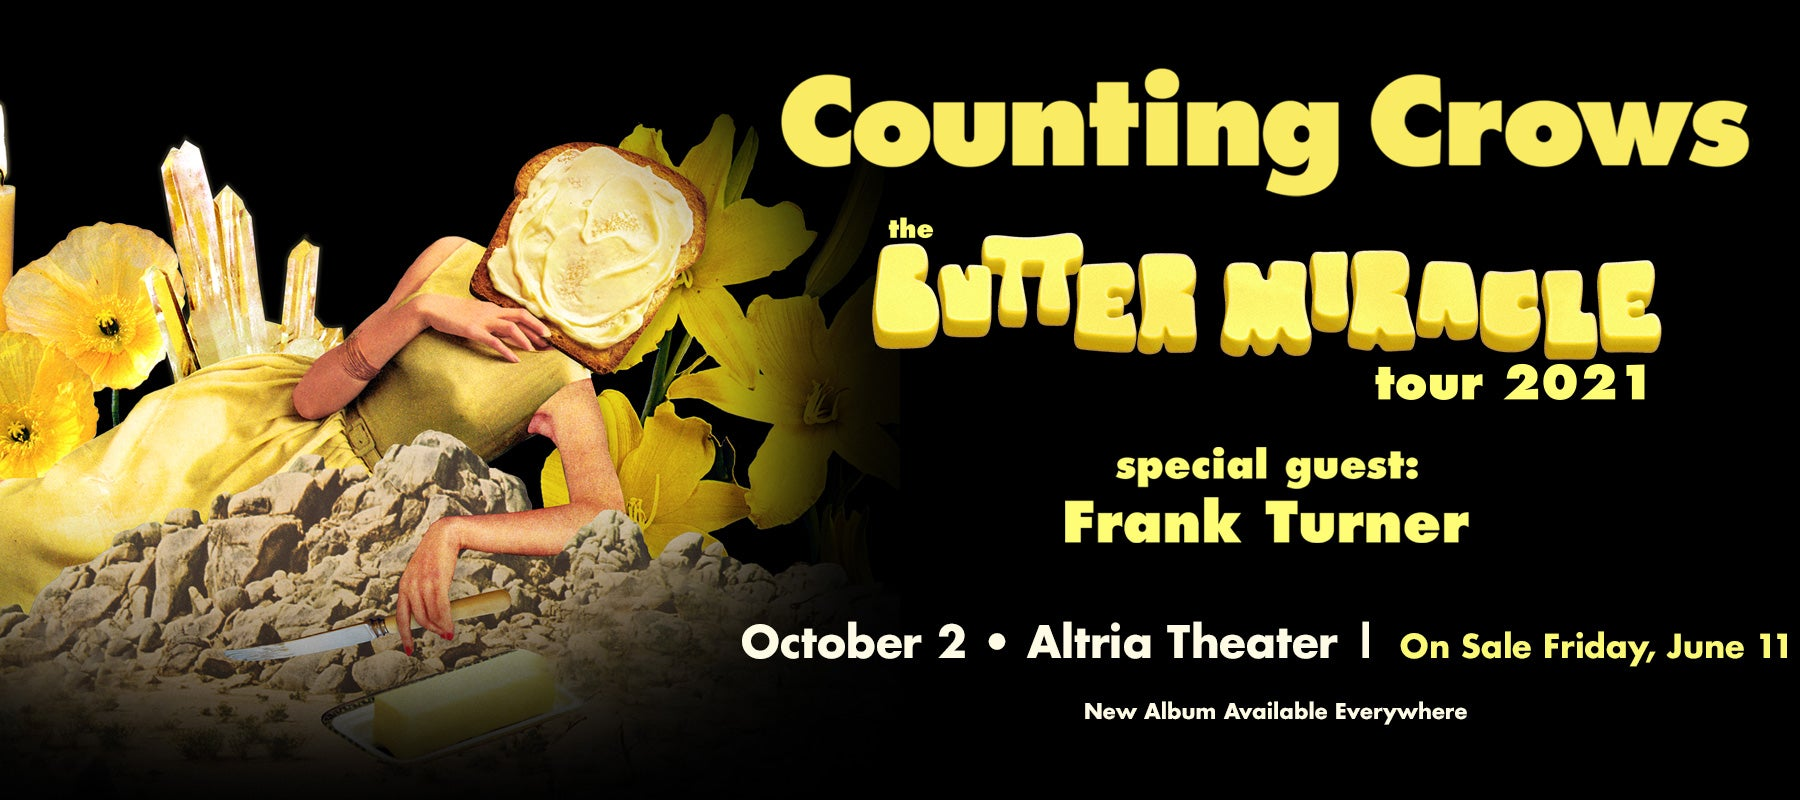 Counting Crows: The Butter Miracle Tour